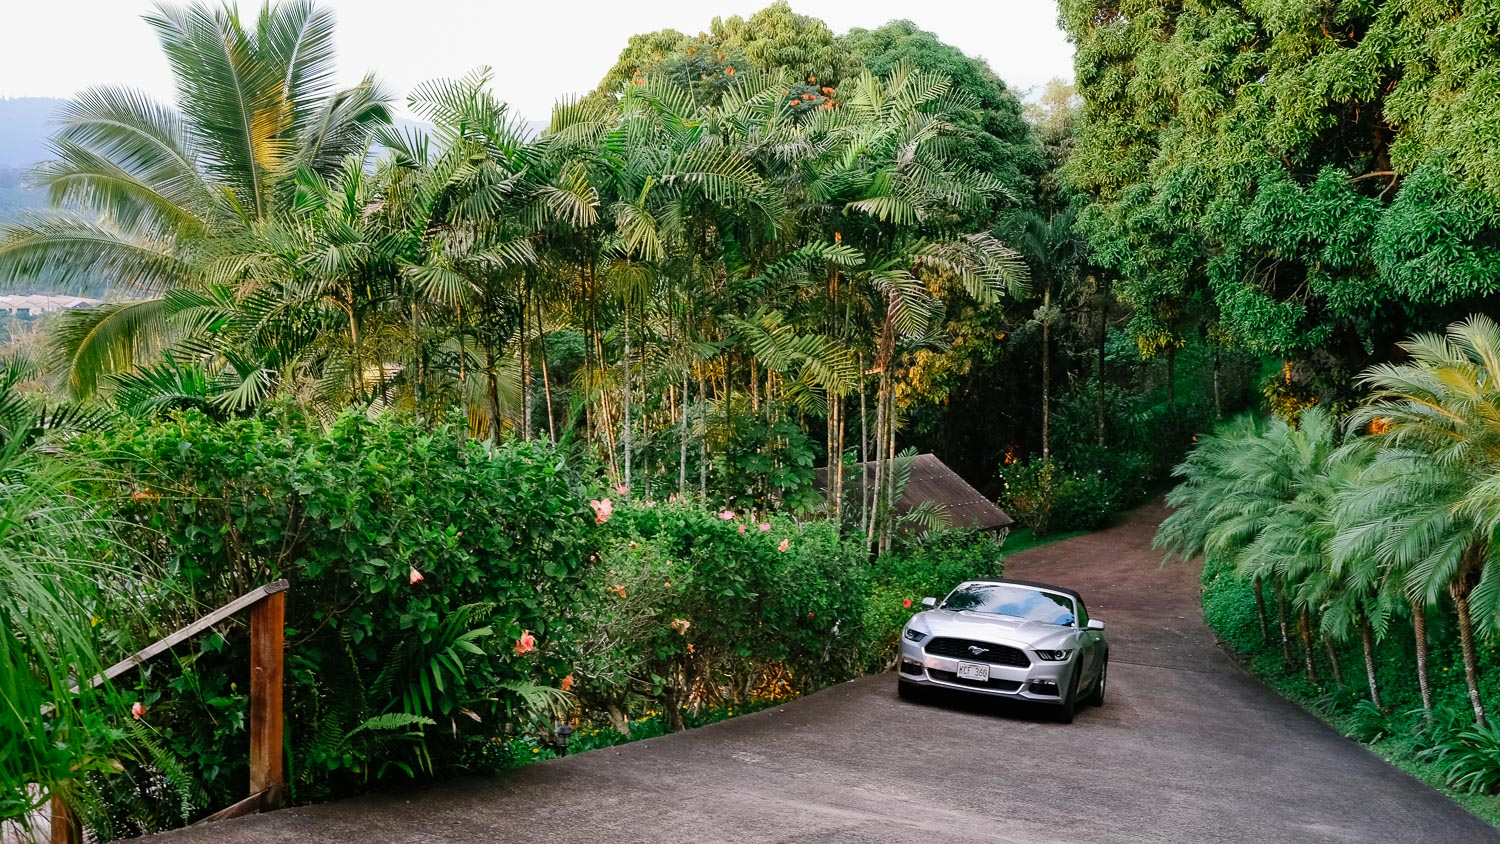 """Our silver Mustang convertible. Travel photography and guide by © Natasha Lequepeys for """"And Then I Met Yoko"""". #kauai #hawaii #travelguide #travelphotoblog #photoblog #travelblog #travelphotography #landscapephotography #travelitinerary #fujifilm #hiking #beach #beachvacation #getoutdoors #explore #wanderlust #aerialphotography #helicopter #travel #usa"""